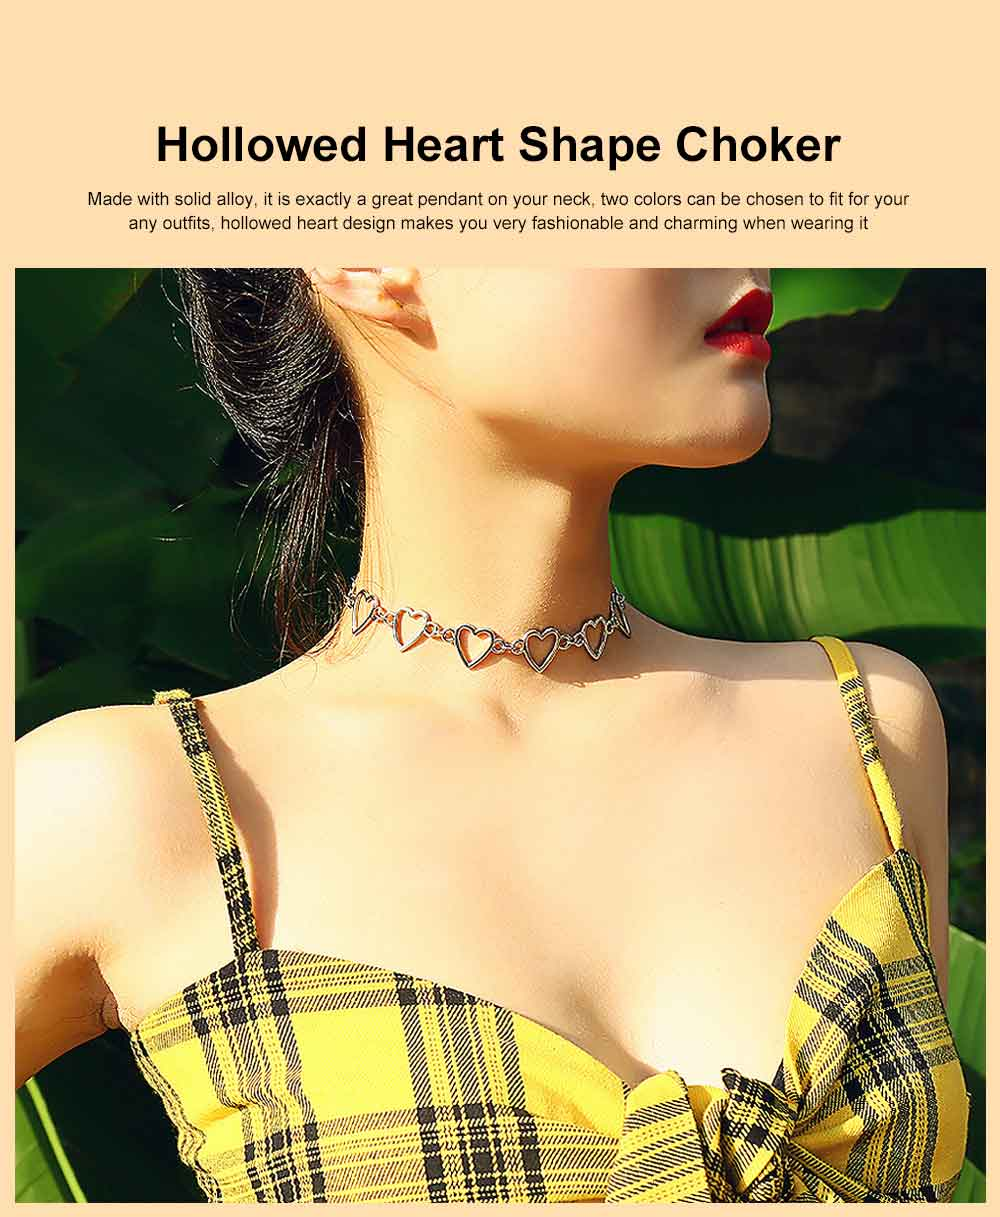 Choker Necklace Girl Women Hollowed Heart Shape Retro Choker Durable Alloy Neck Chain 0